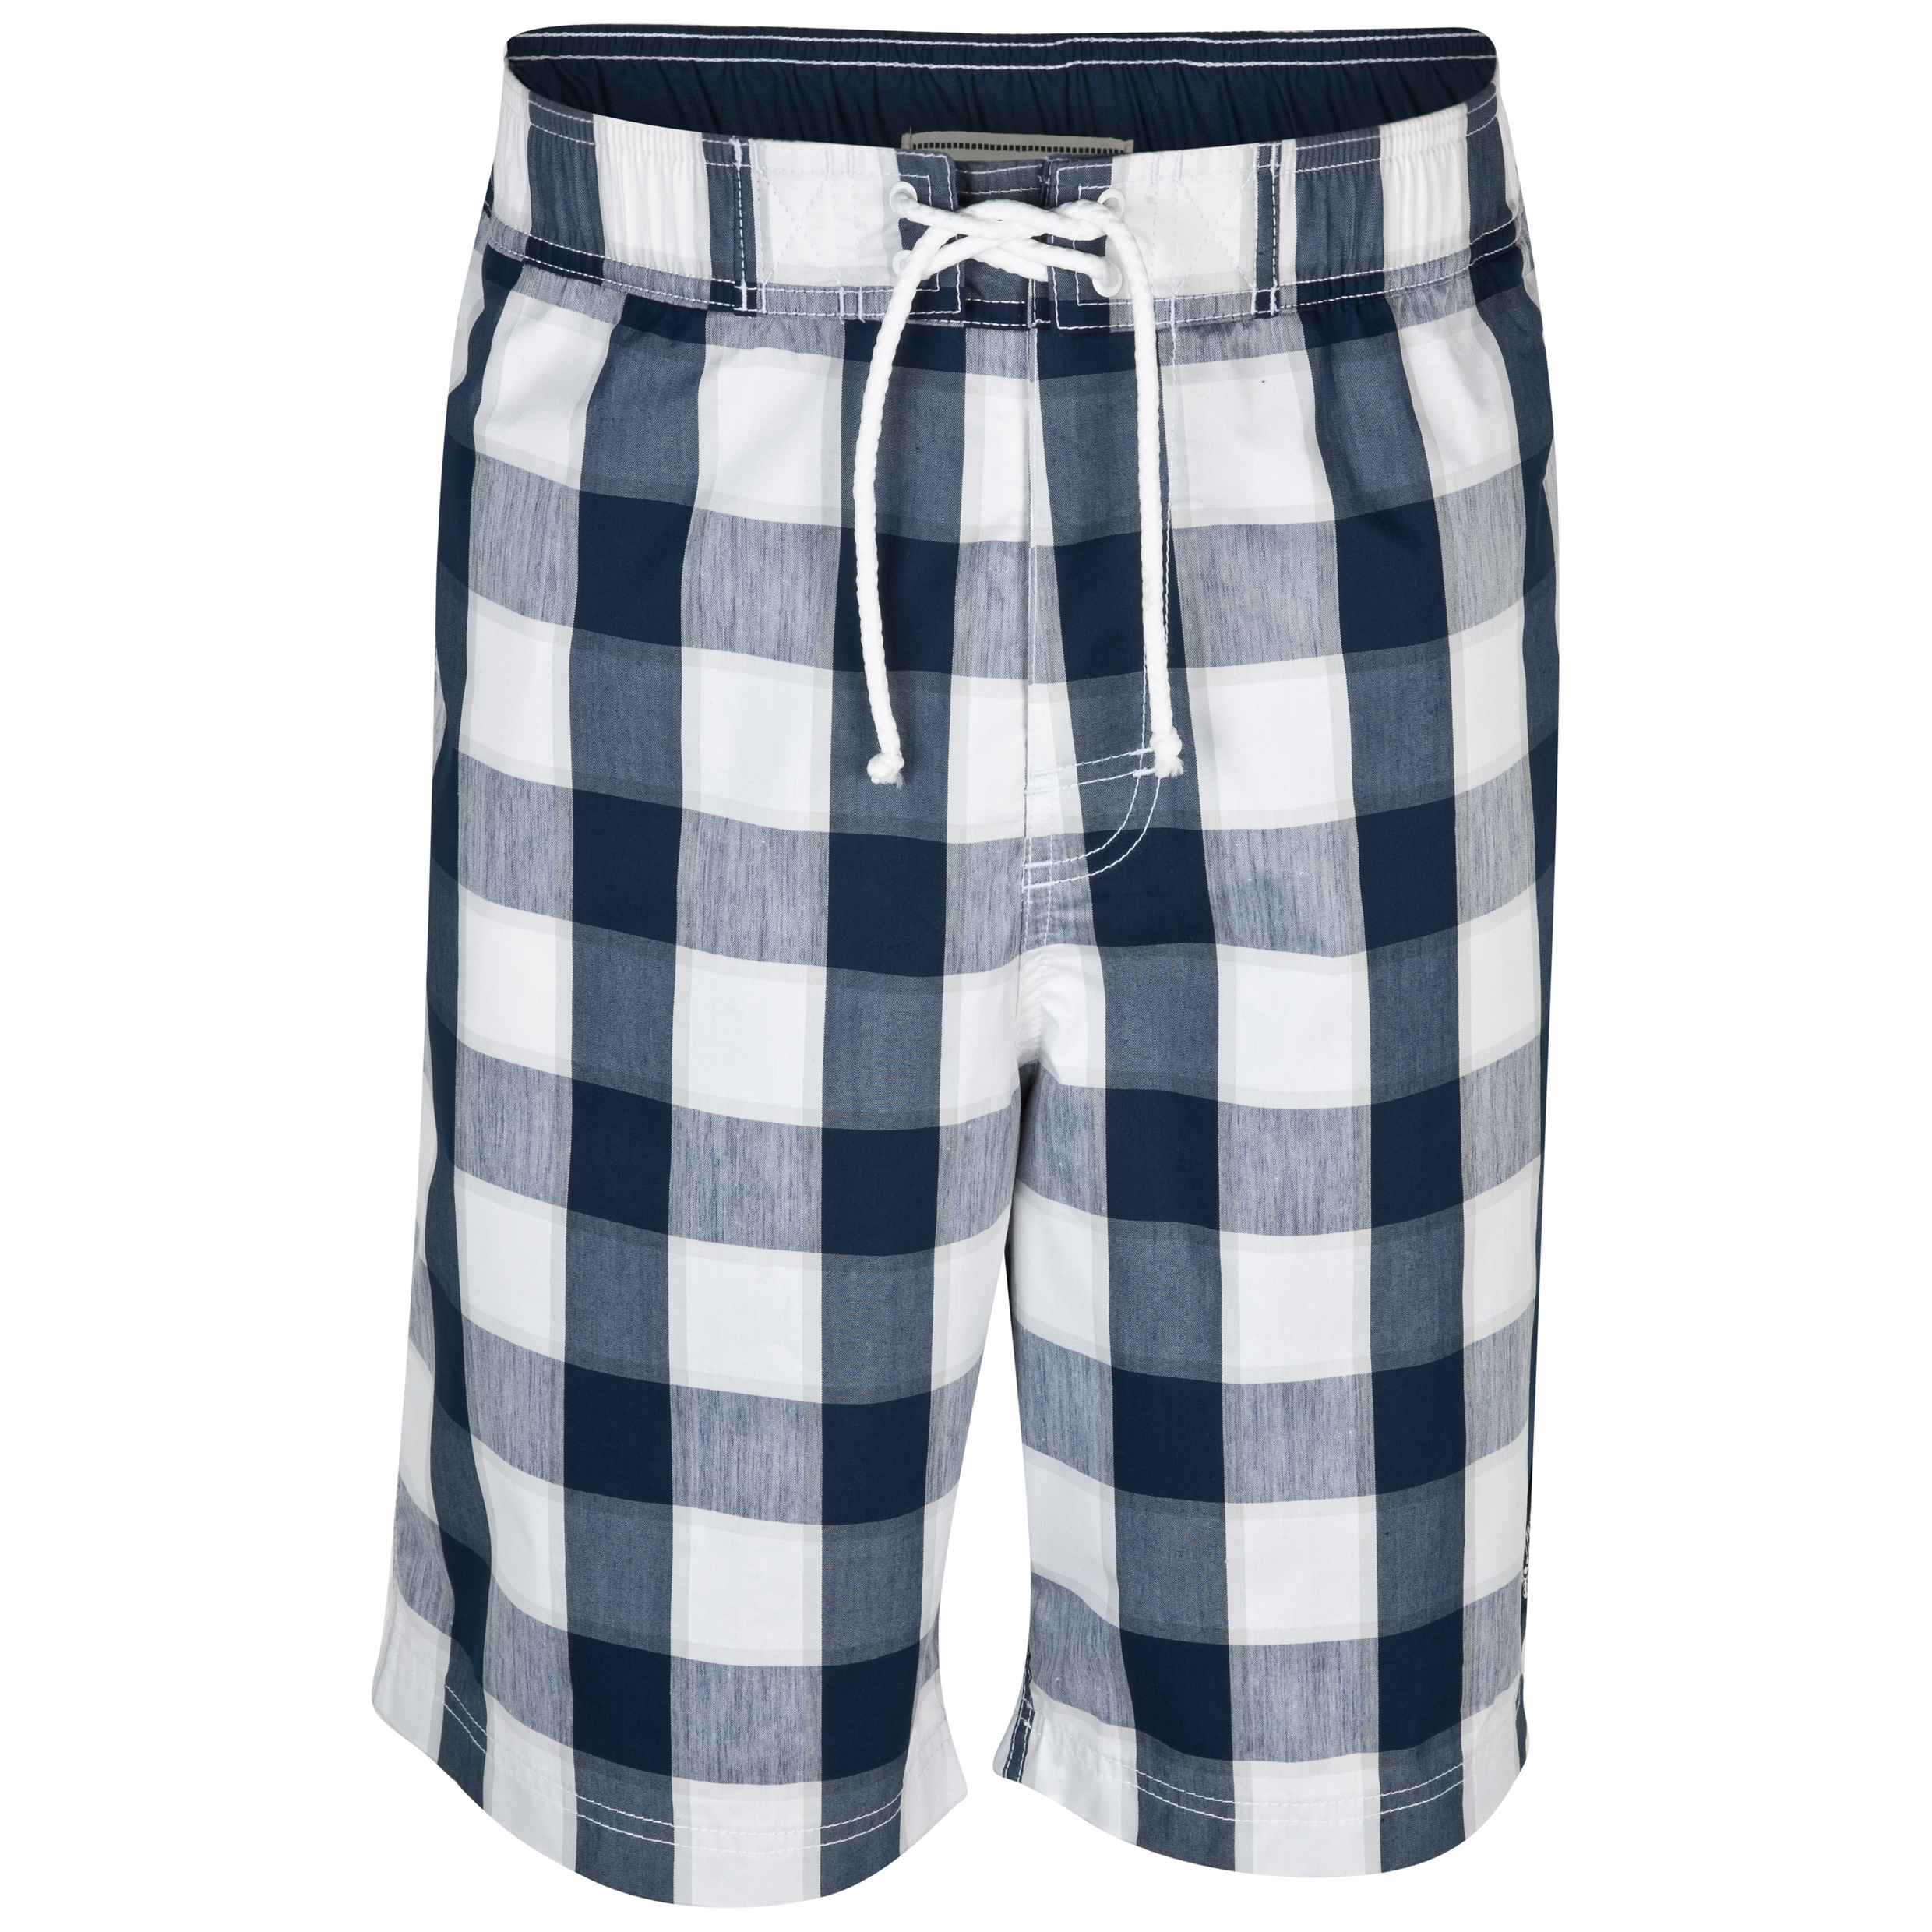 Manchester City Surf Shorts - White/Navy/Grey - Boys